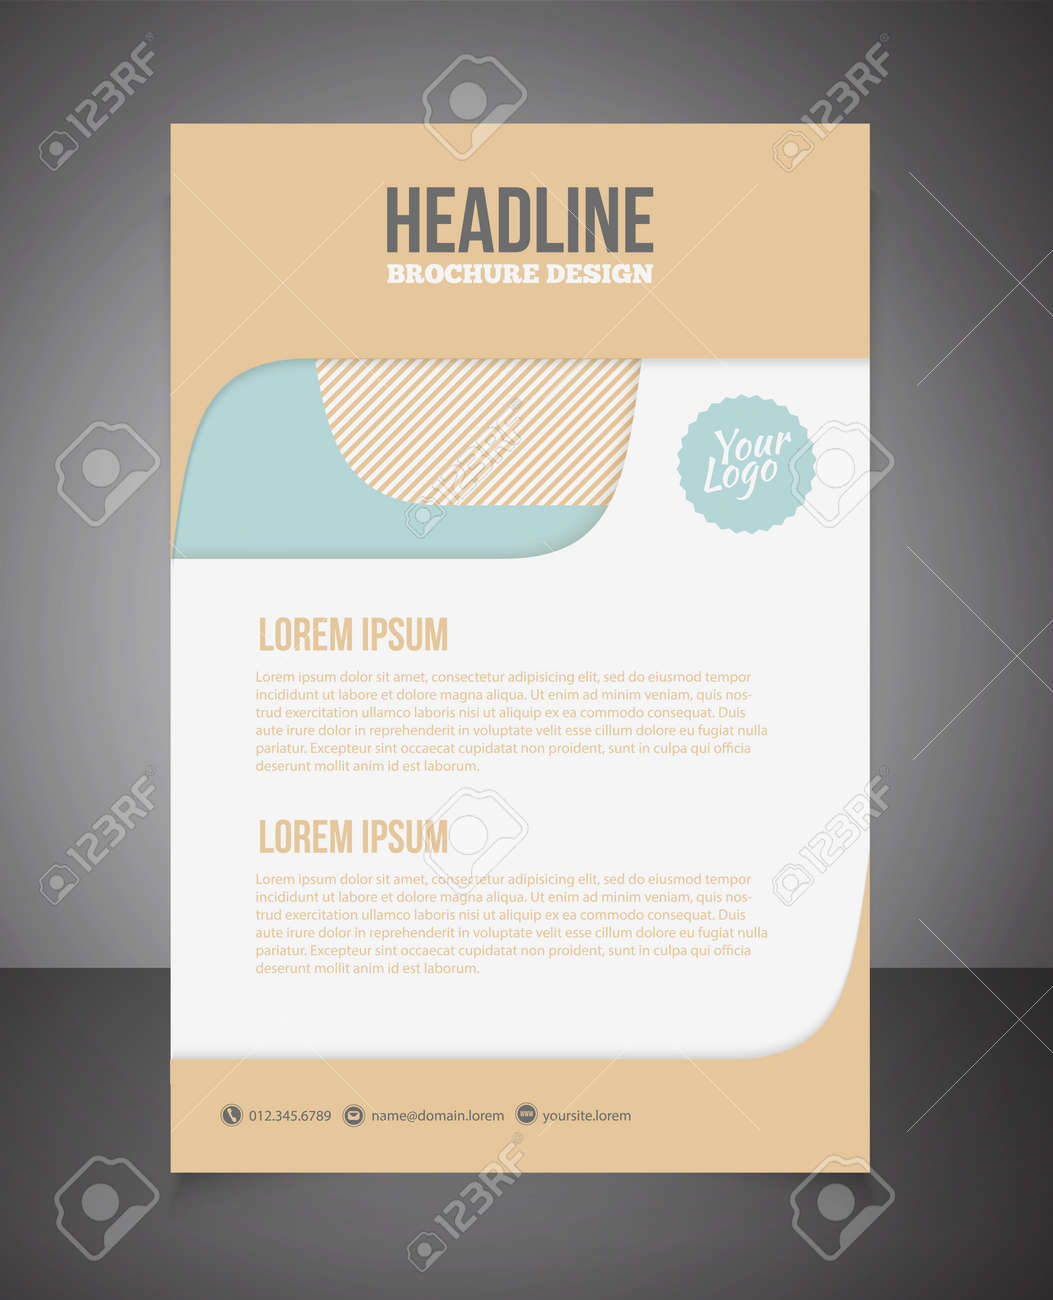 Business Brochure Or Offer Flyer Design Template Brochure Design